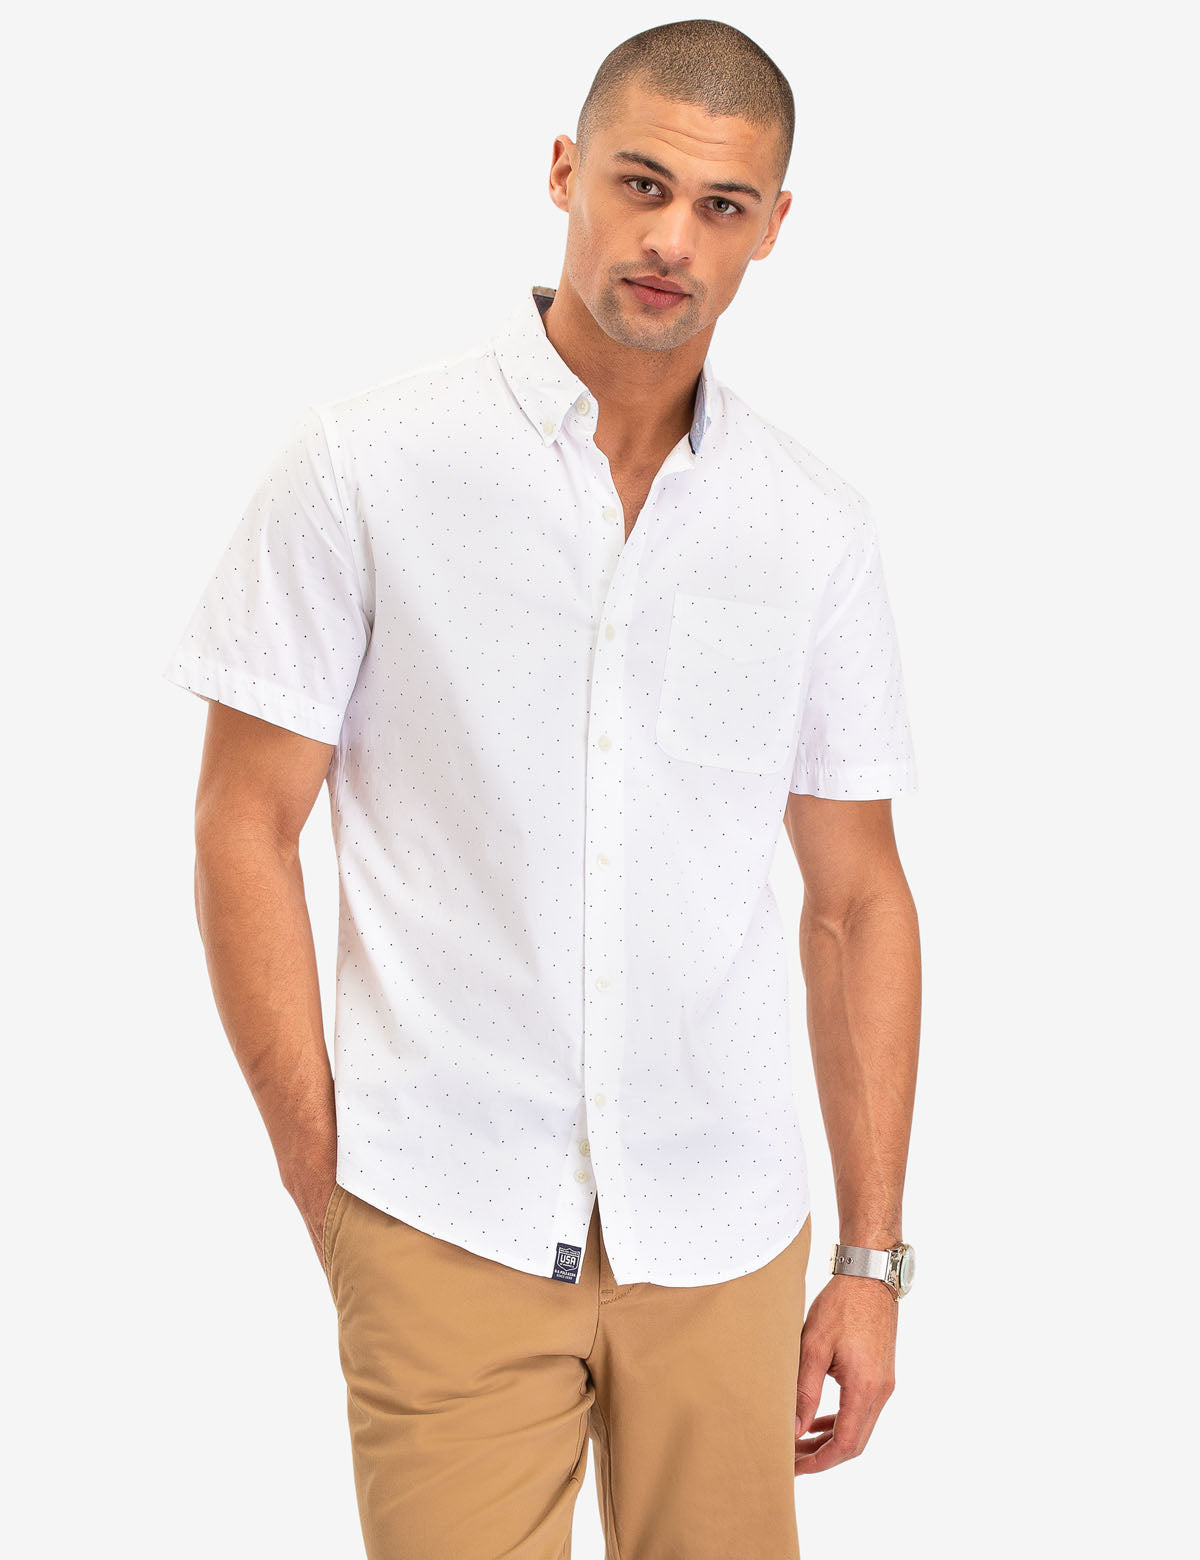 DOT PRINT POPLIN SHORT SLEEVE SHIRT